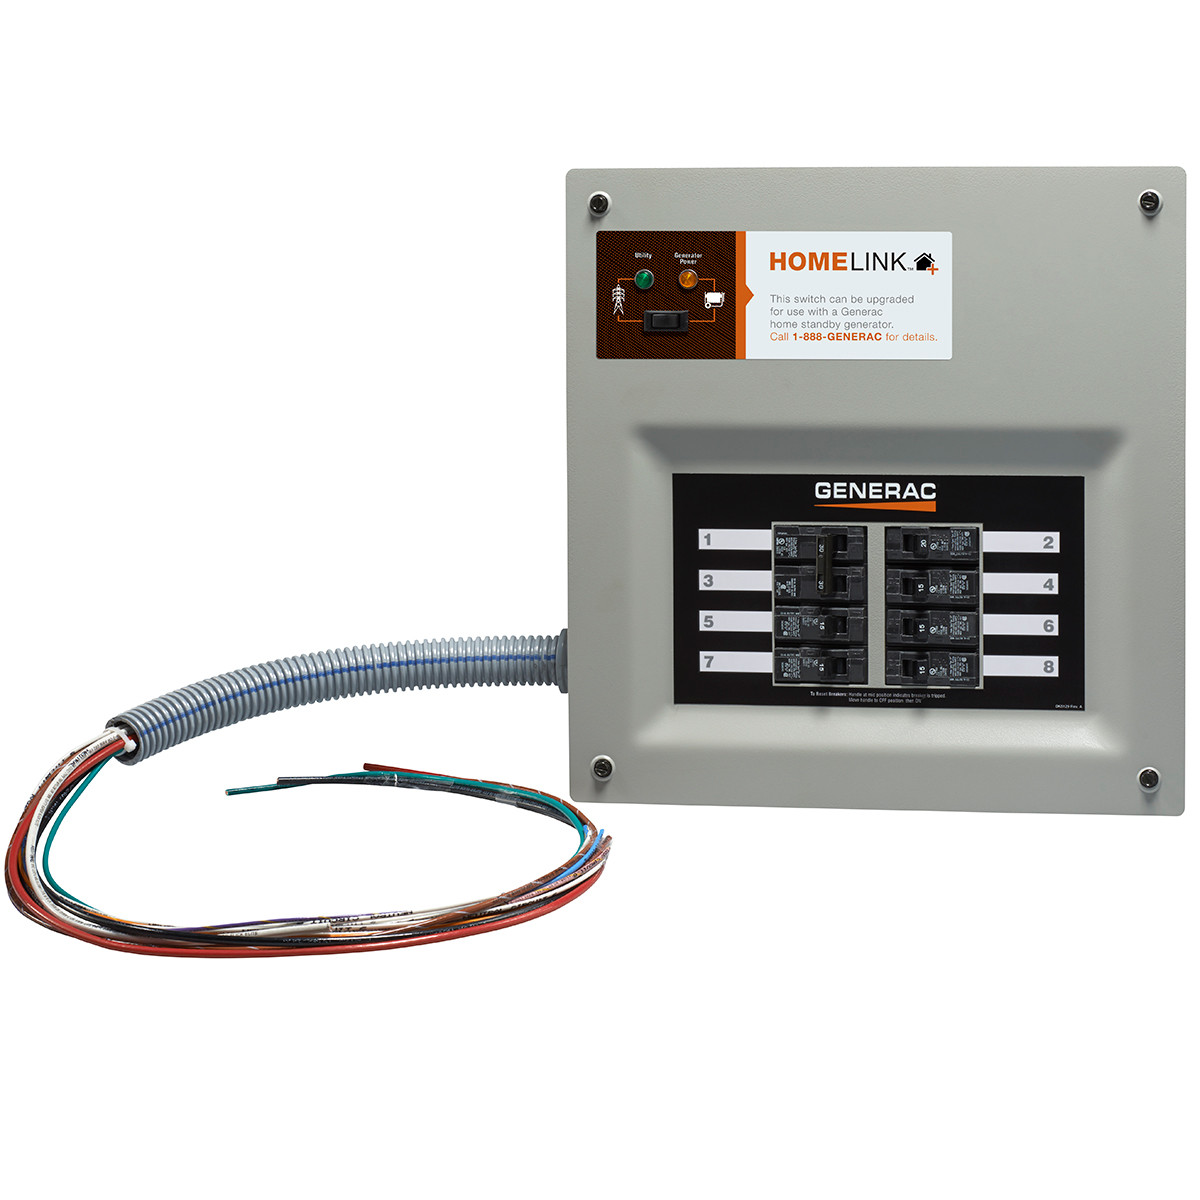 Generac HomeLink 9855 50A 10-16 Circuit Nema 1 Upgradeable Manual Transfer  Switch with Aluminum ...